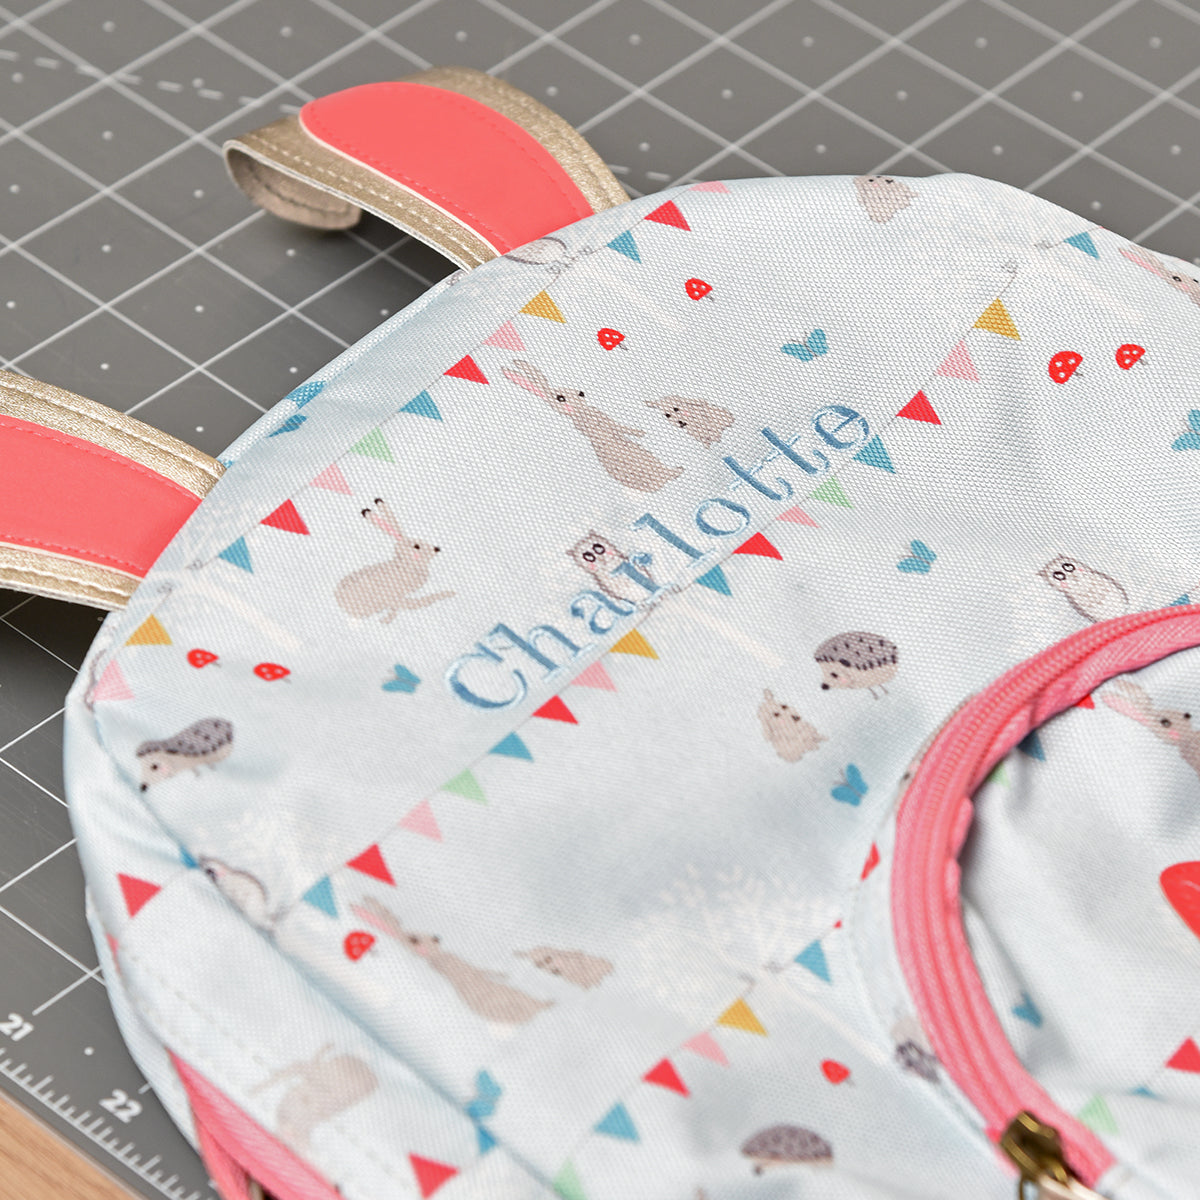 Personalise Your Products With Sophie Allport